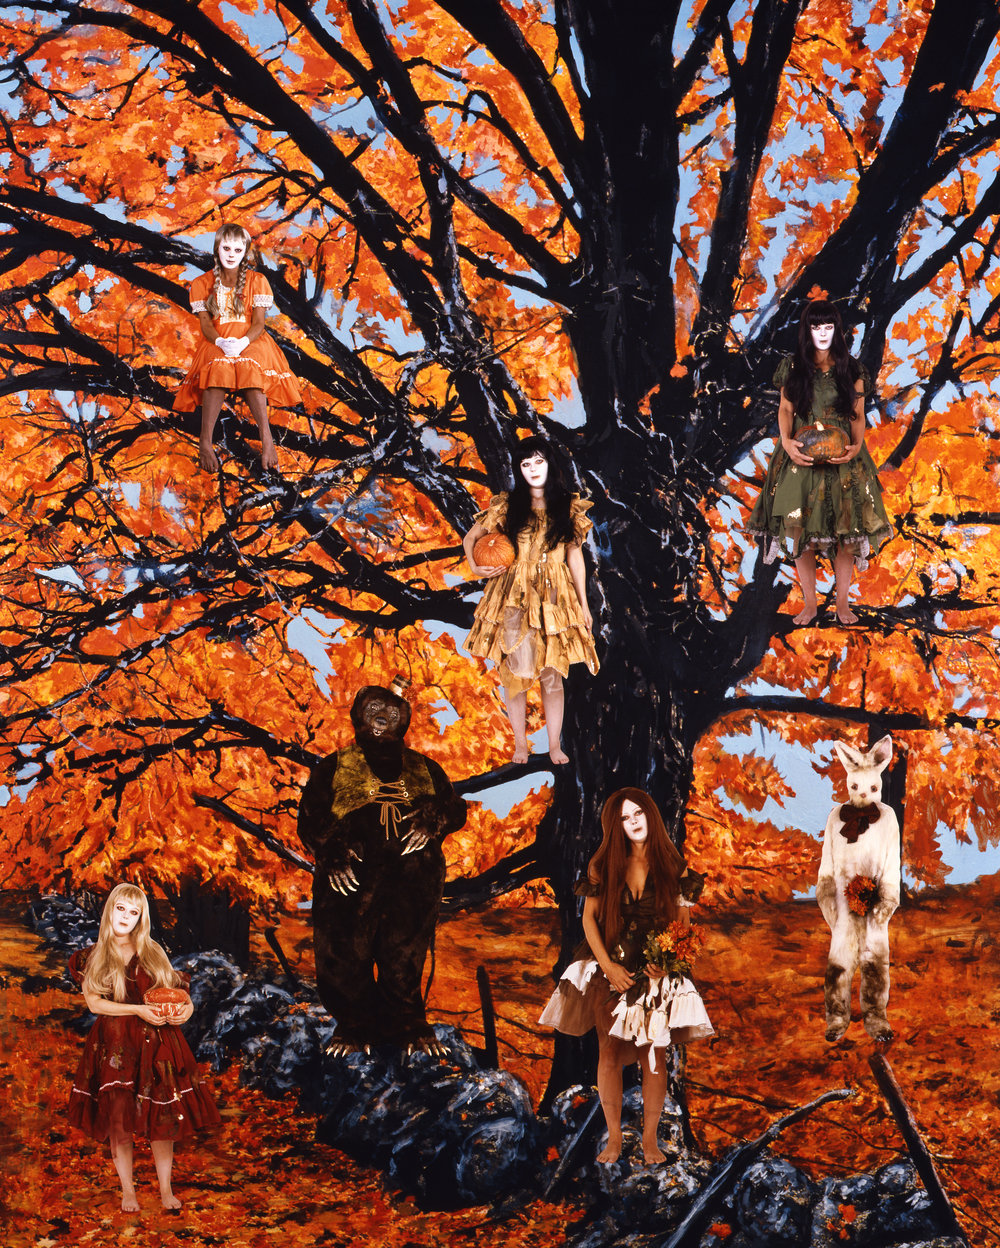 Harvest Tree, 2008 collage on photograph 155 x 125 cm - 61 1/32 x 49 7/32 inches (framed)